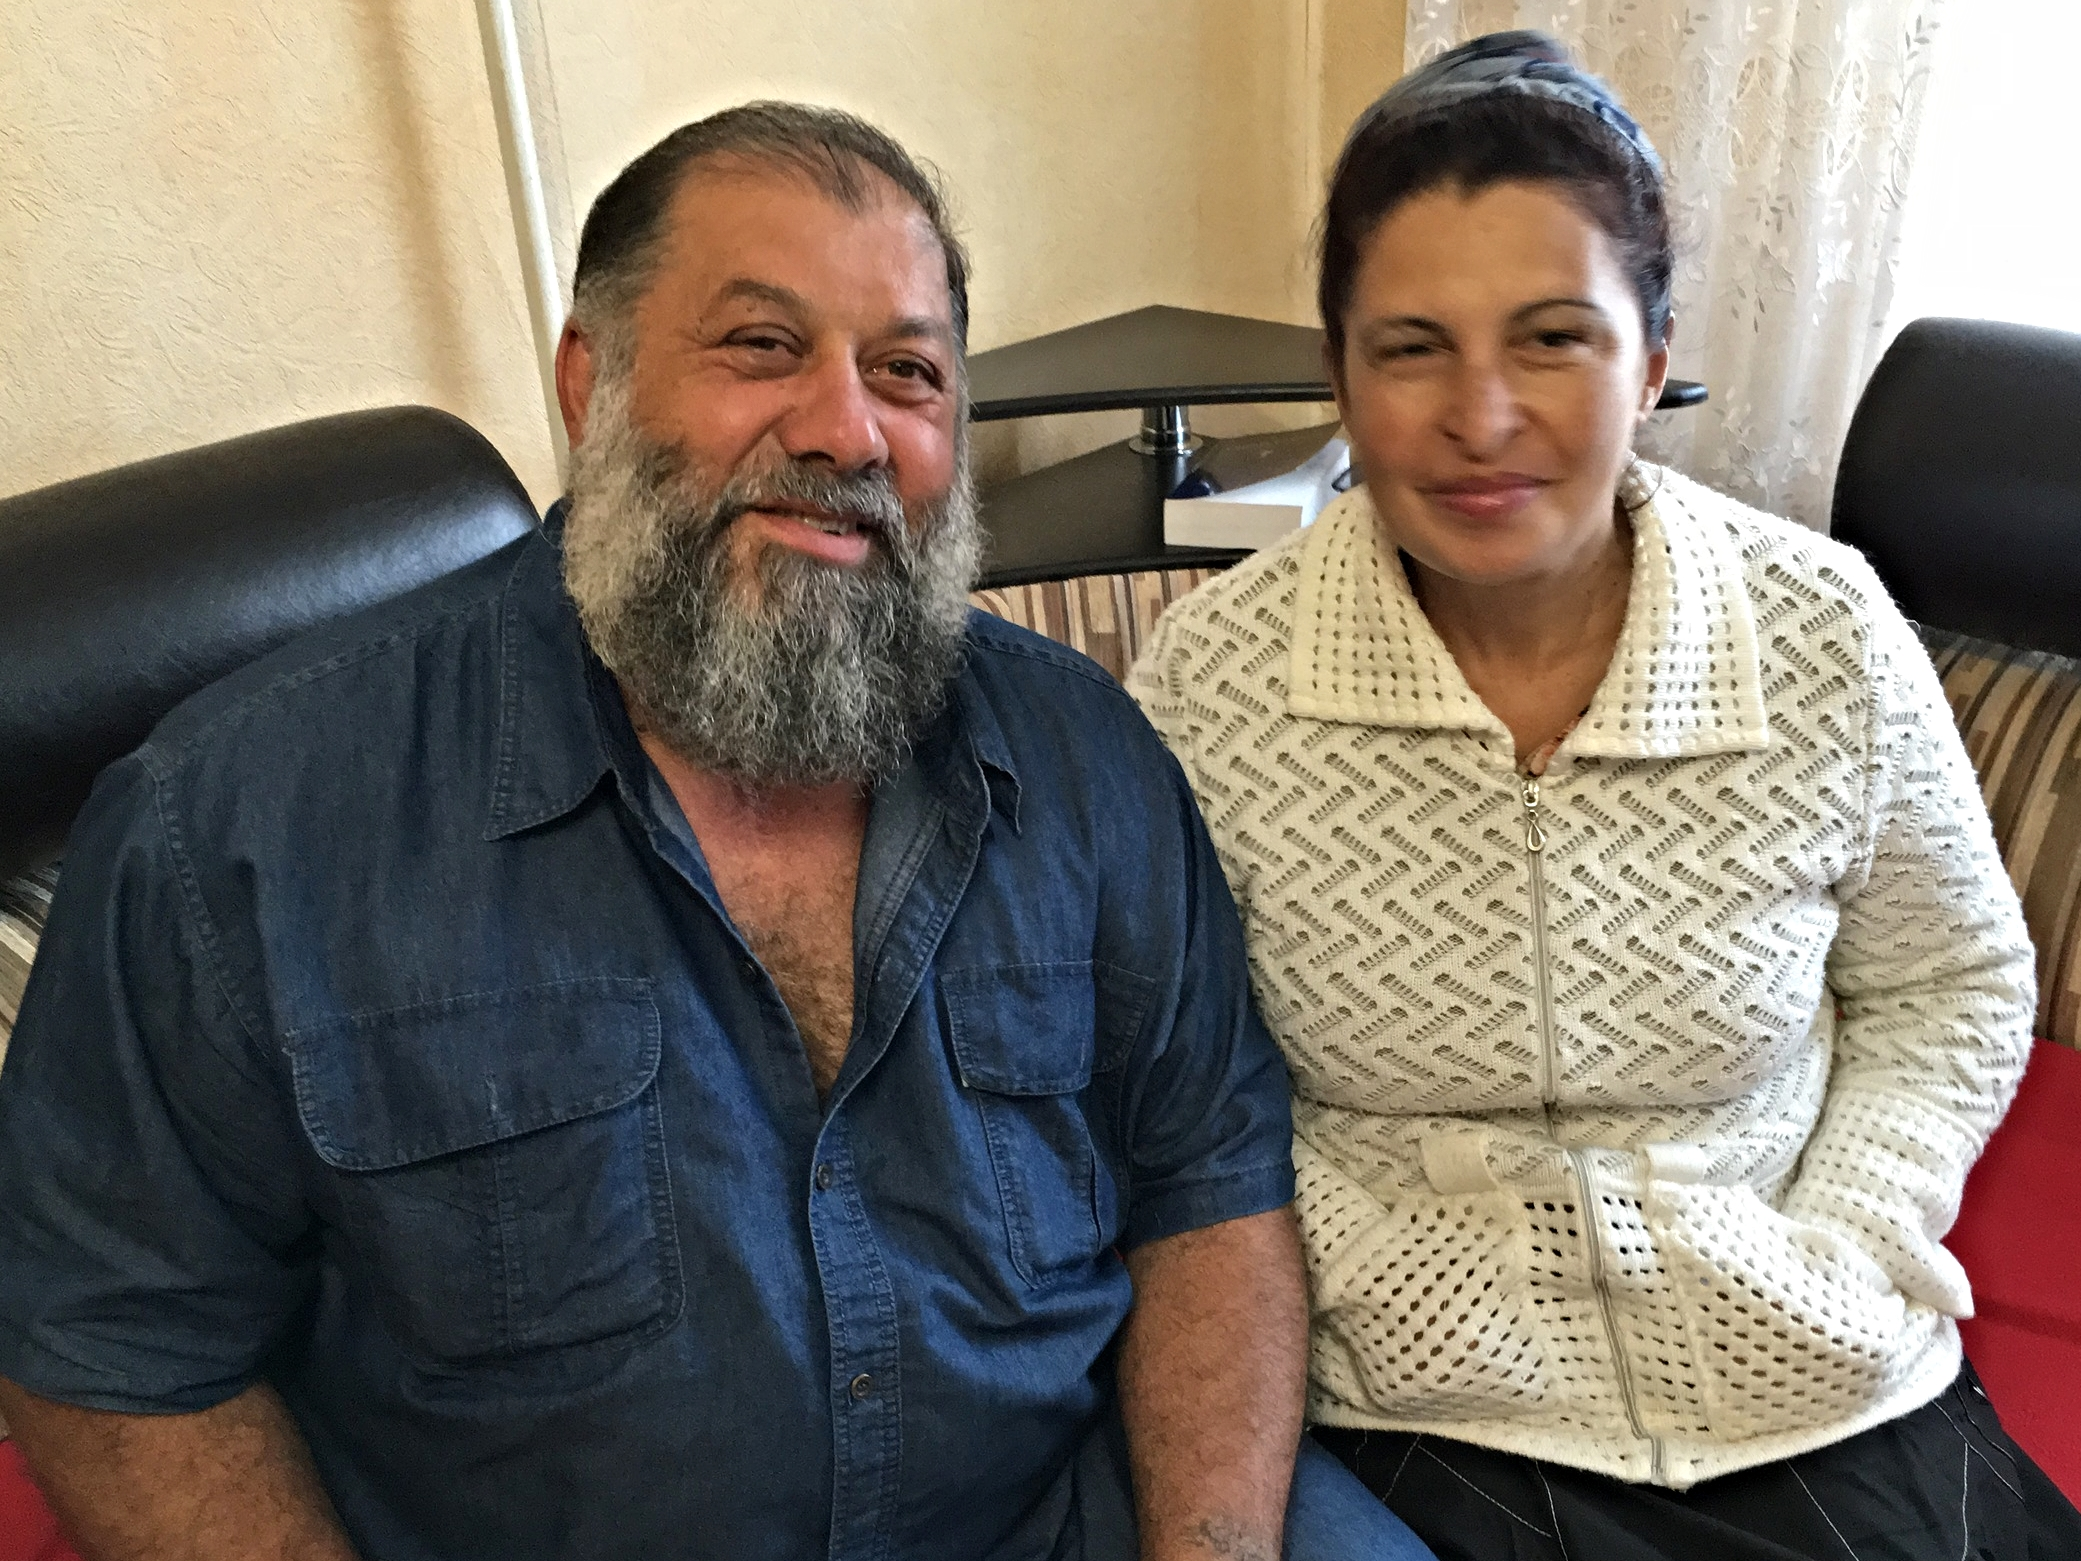 Pastor Andre Beskorovaini and his wife, Larissa